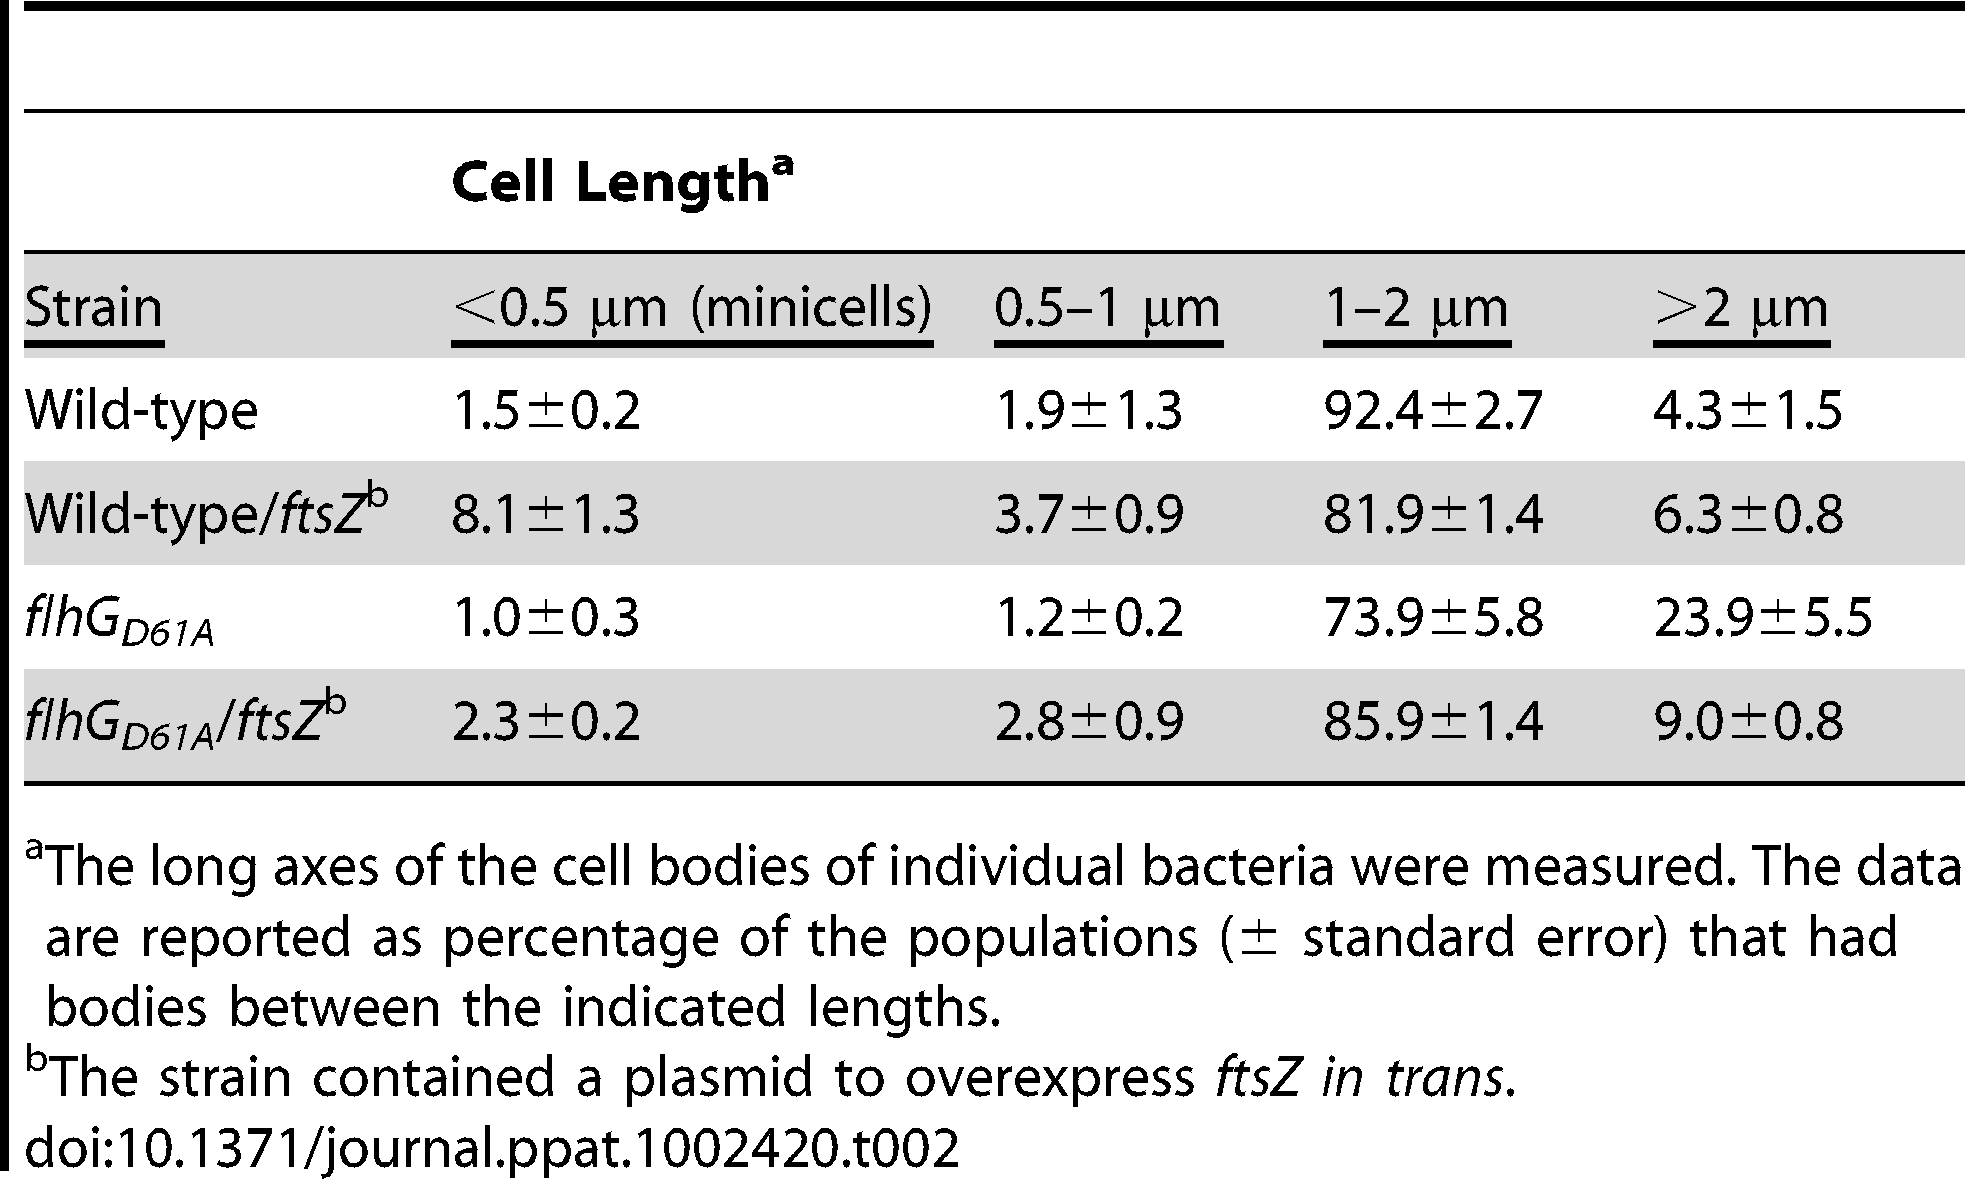 Analysis of the effects of FtsZ overexpression on minicell and elongated cell phenotypes of wild-type <i>C. jejuni</i> and <i>C. jejuni flhG D61A</i>.